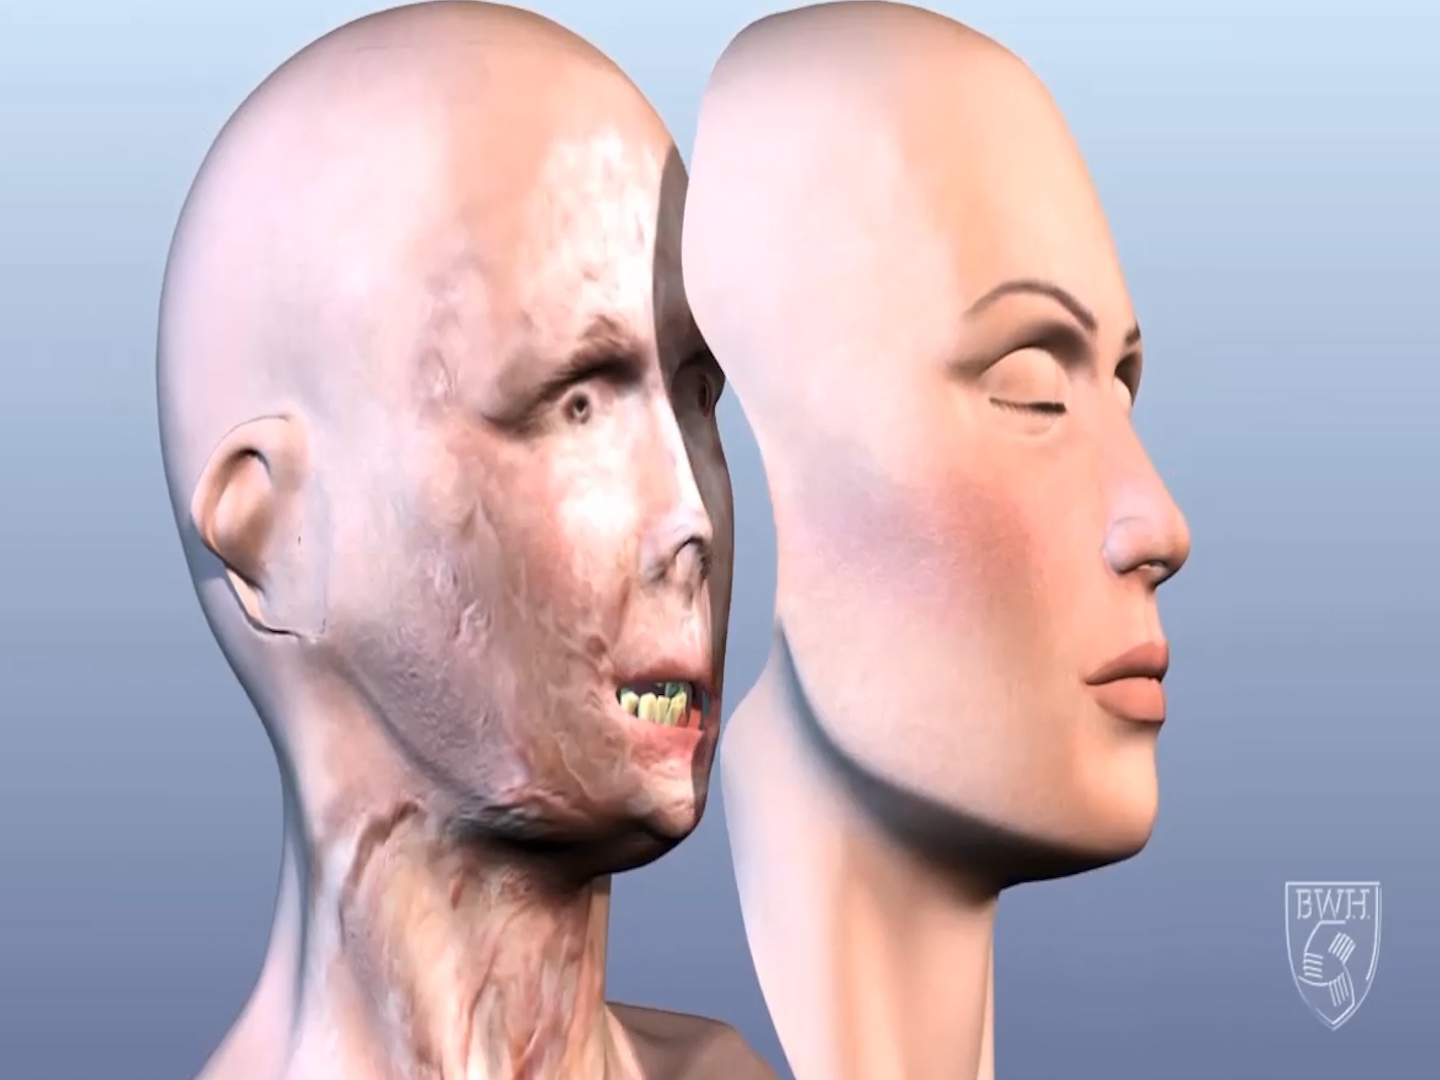 3D printing used in full face transplants